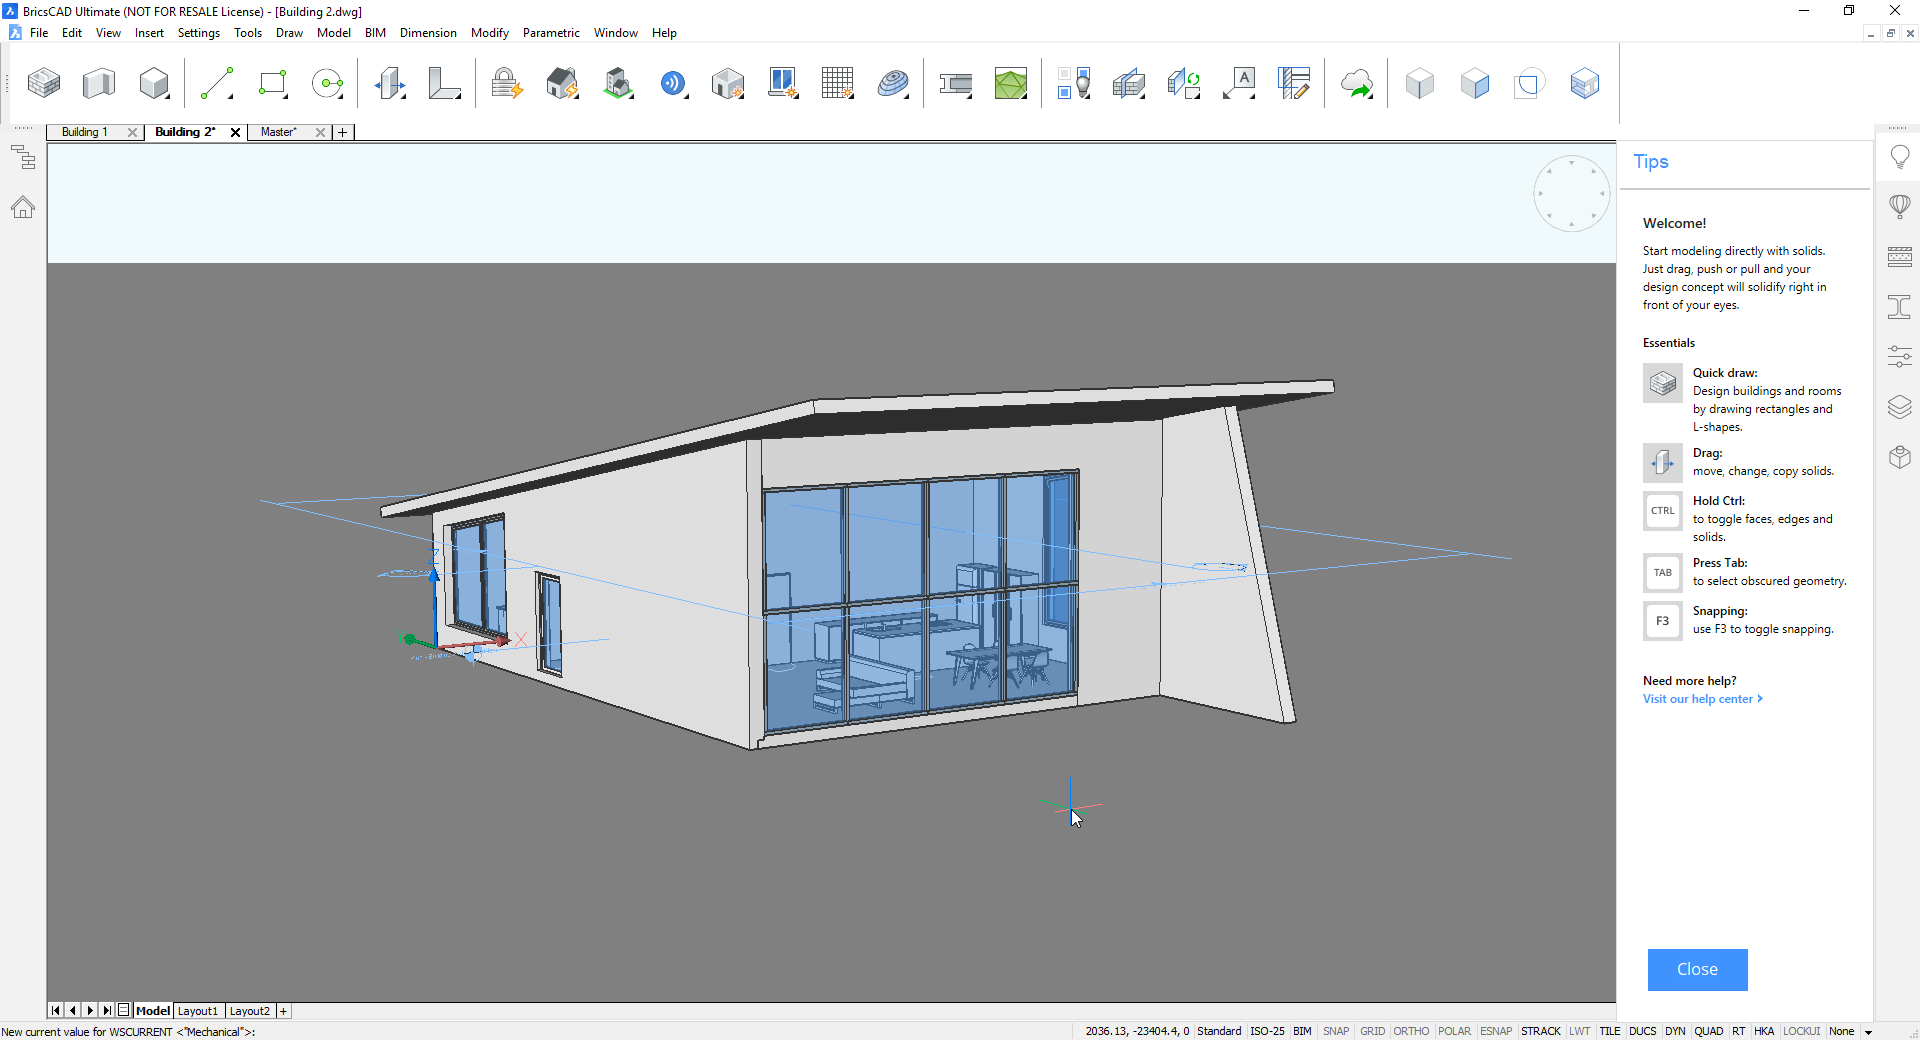 BricsCAD Journey - Part 7: Exploring each Workspace